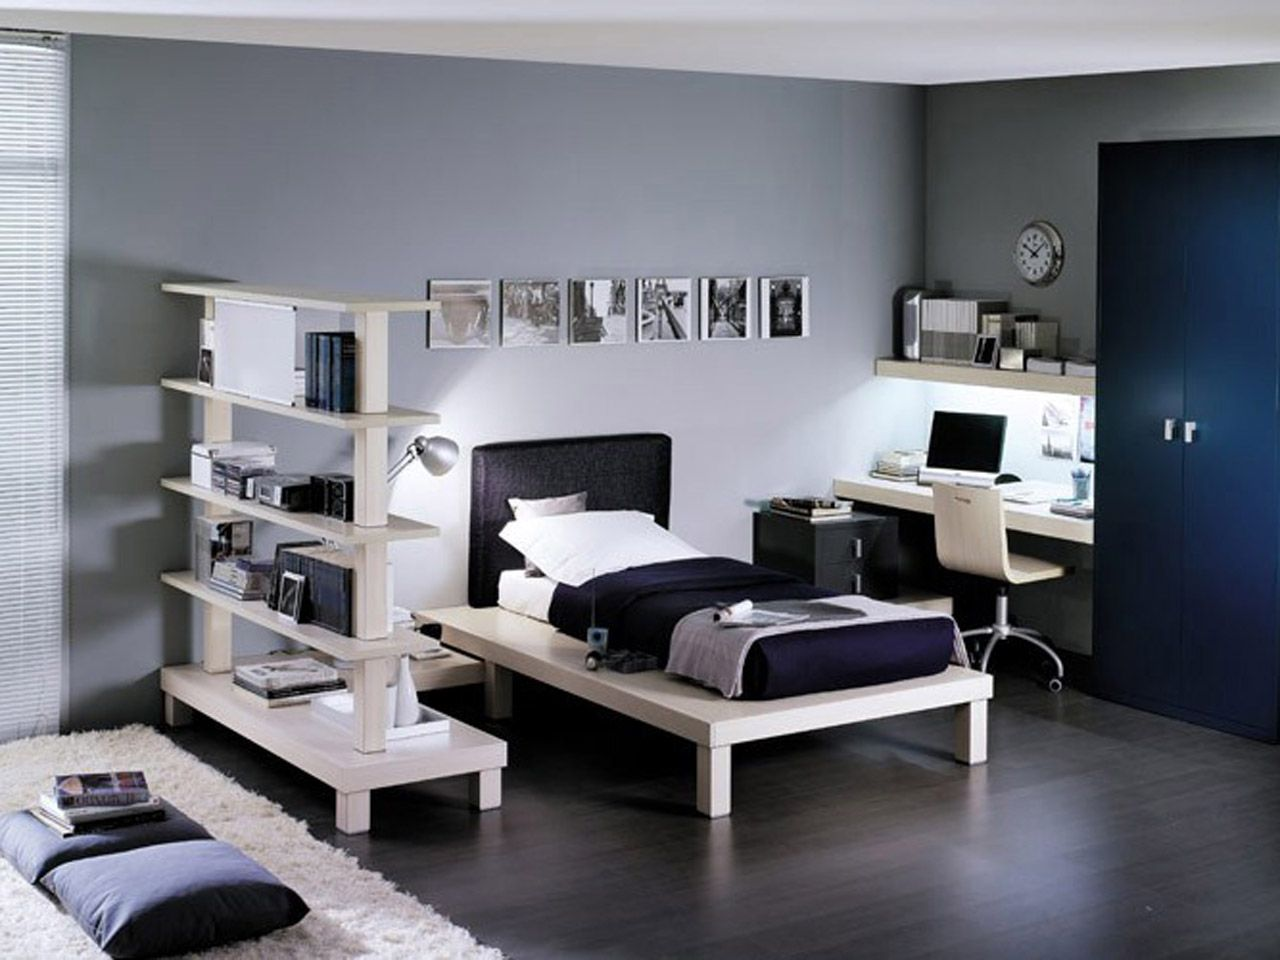 Kids Black Bedroom Furniture 134 best kids bedroom images on pinterest | nursery, bedroom